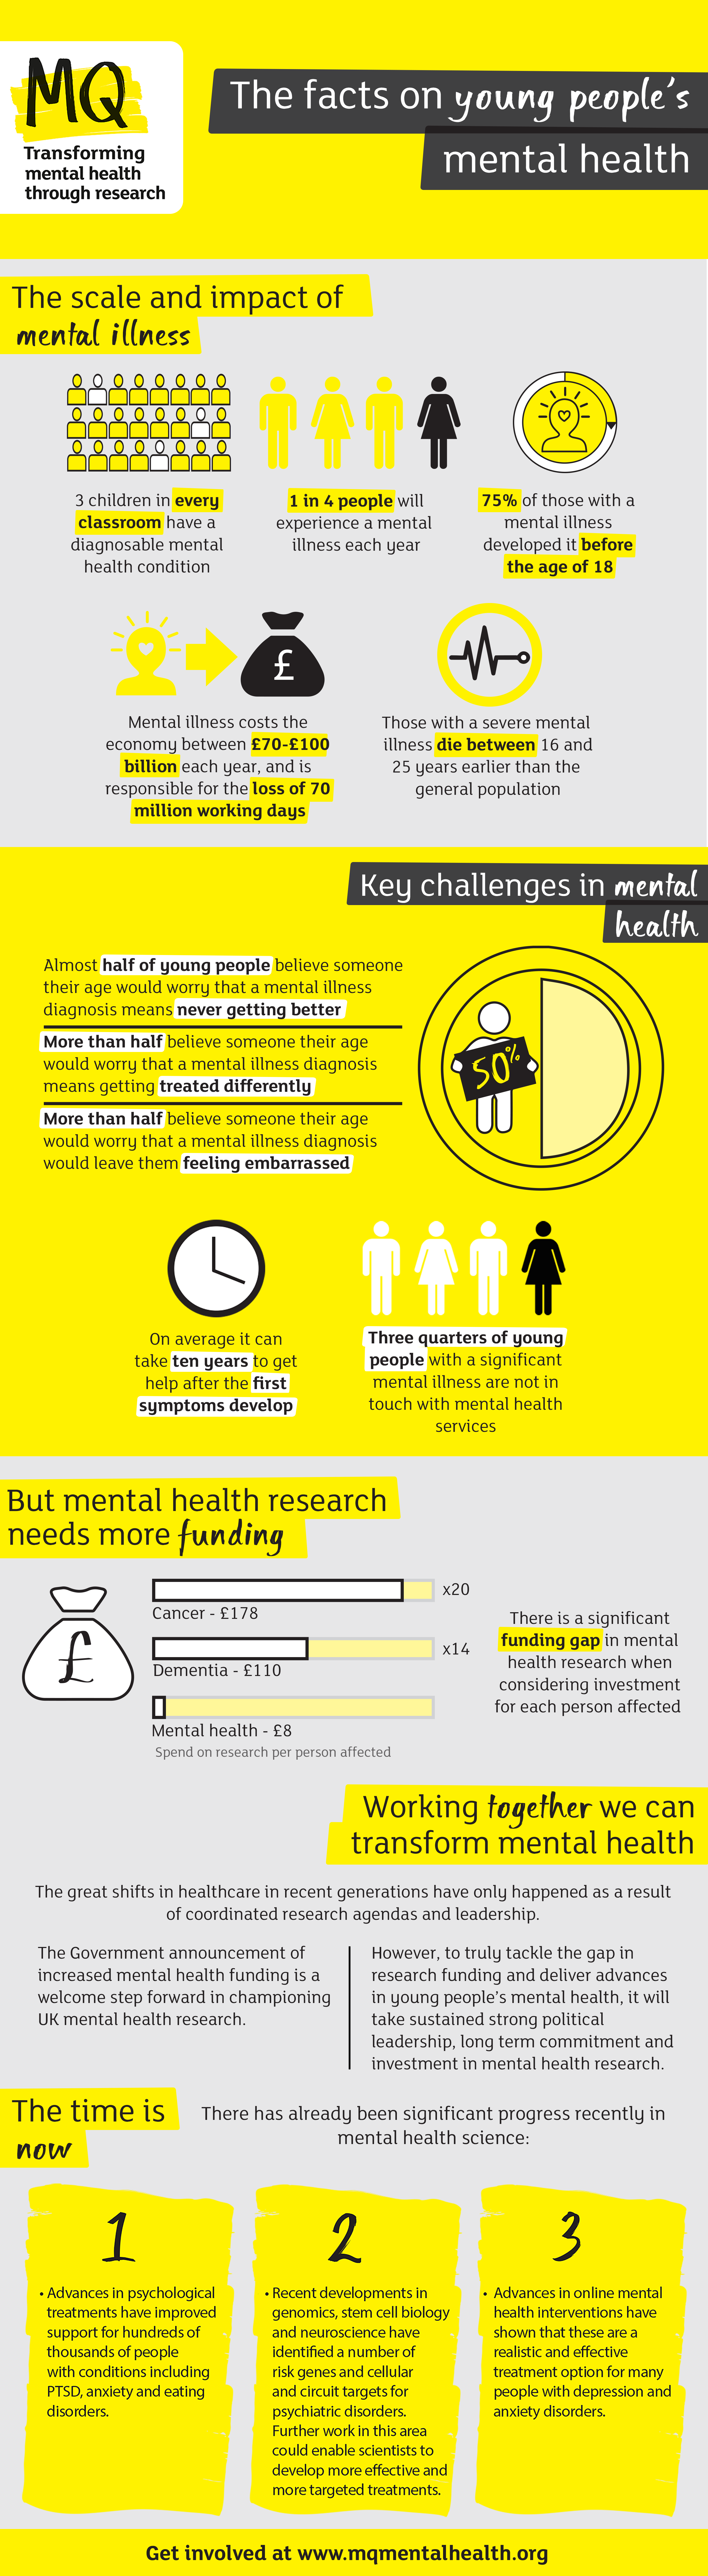 MQ Mental Health Infographic(1)